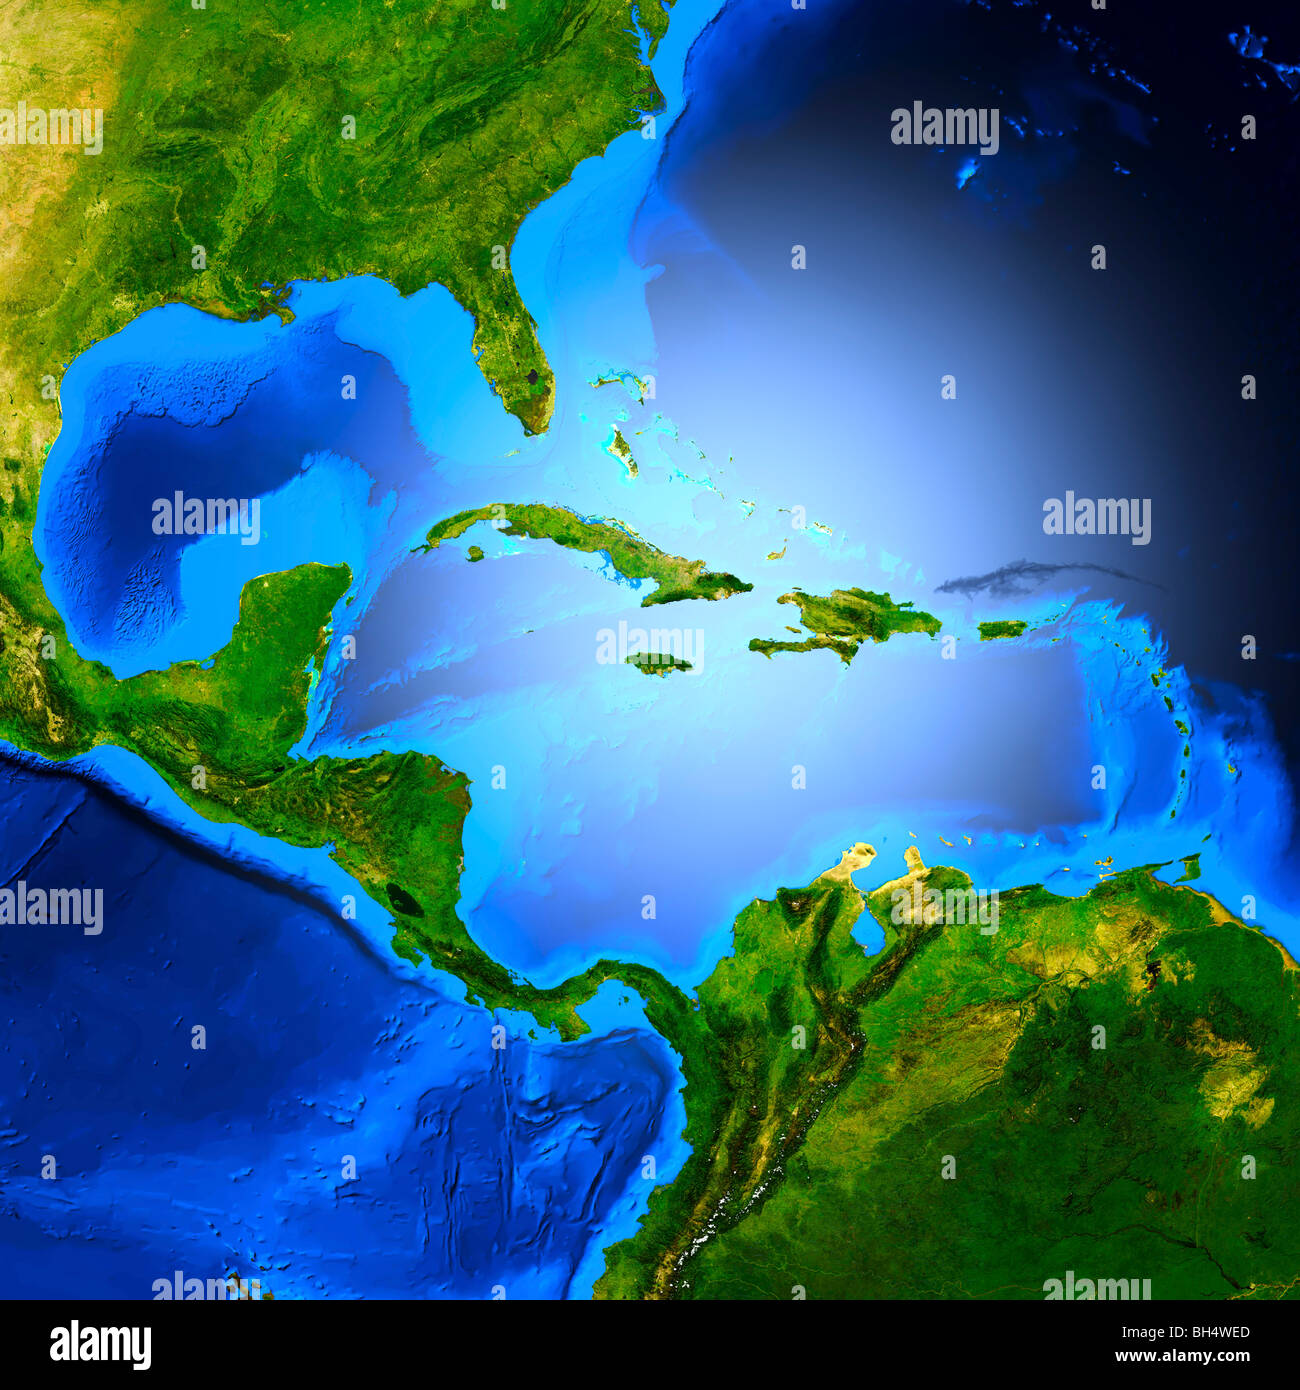 map of central america showing the caribbean sea the gulf of